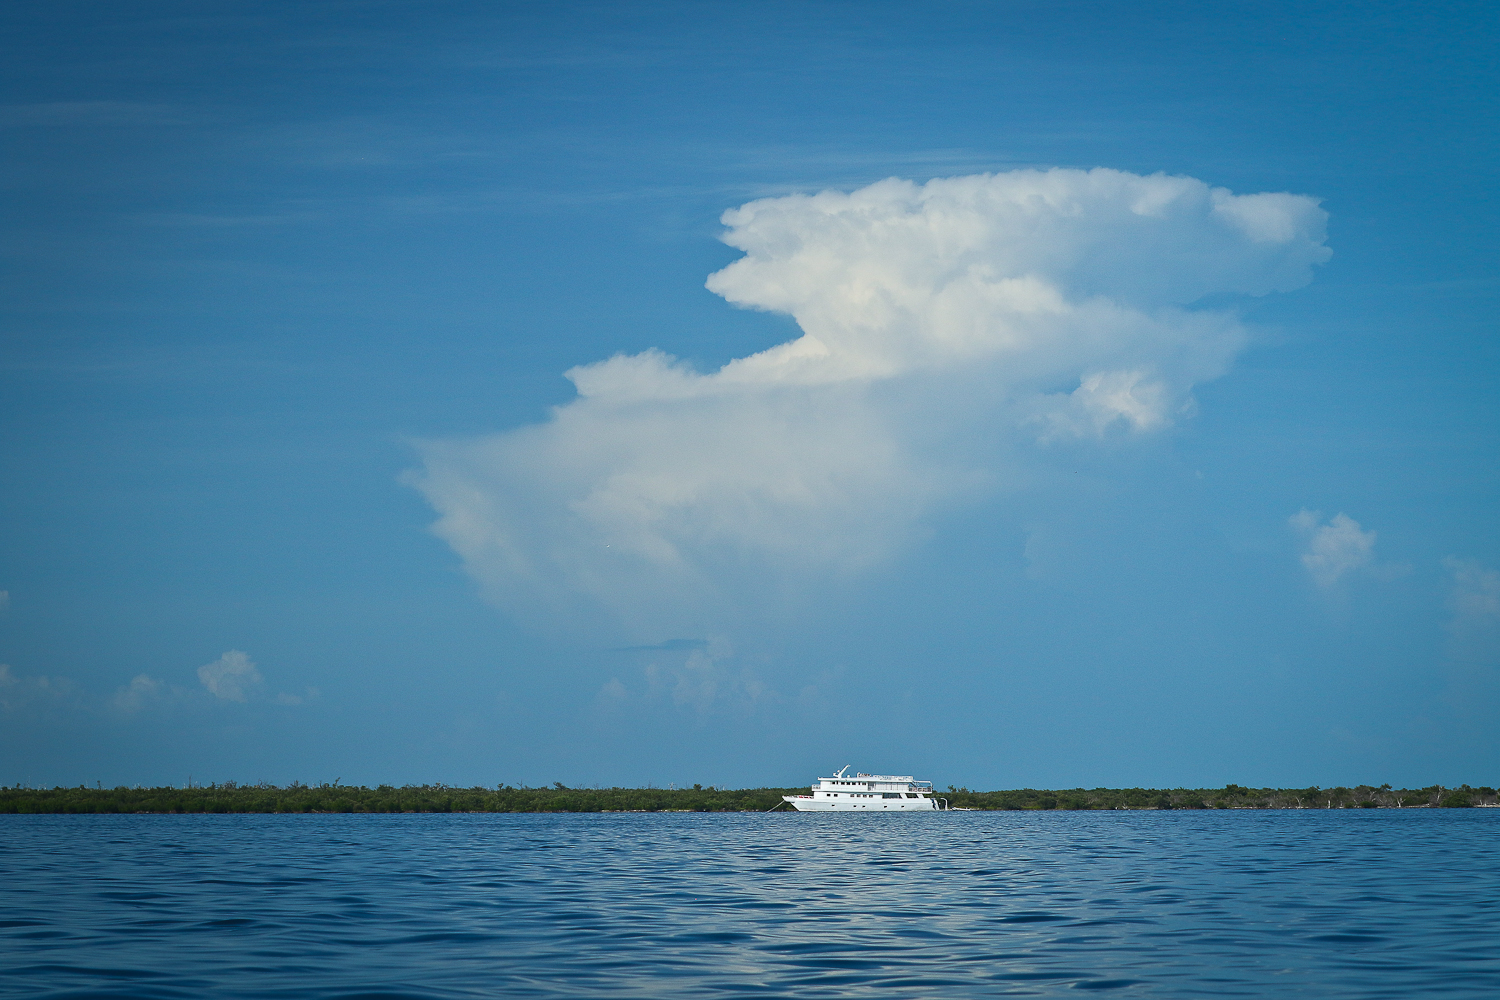 The Aggressor, moored in a Channel surround by Tarpon habitat